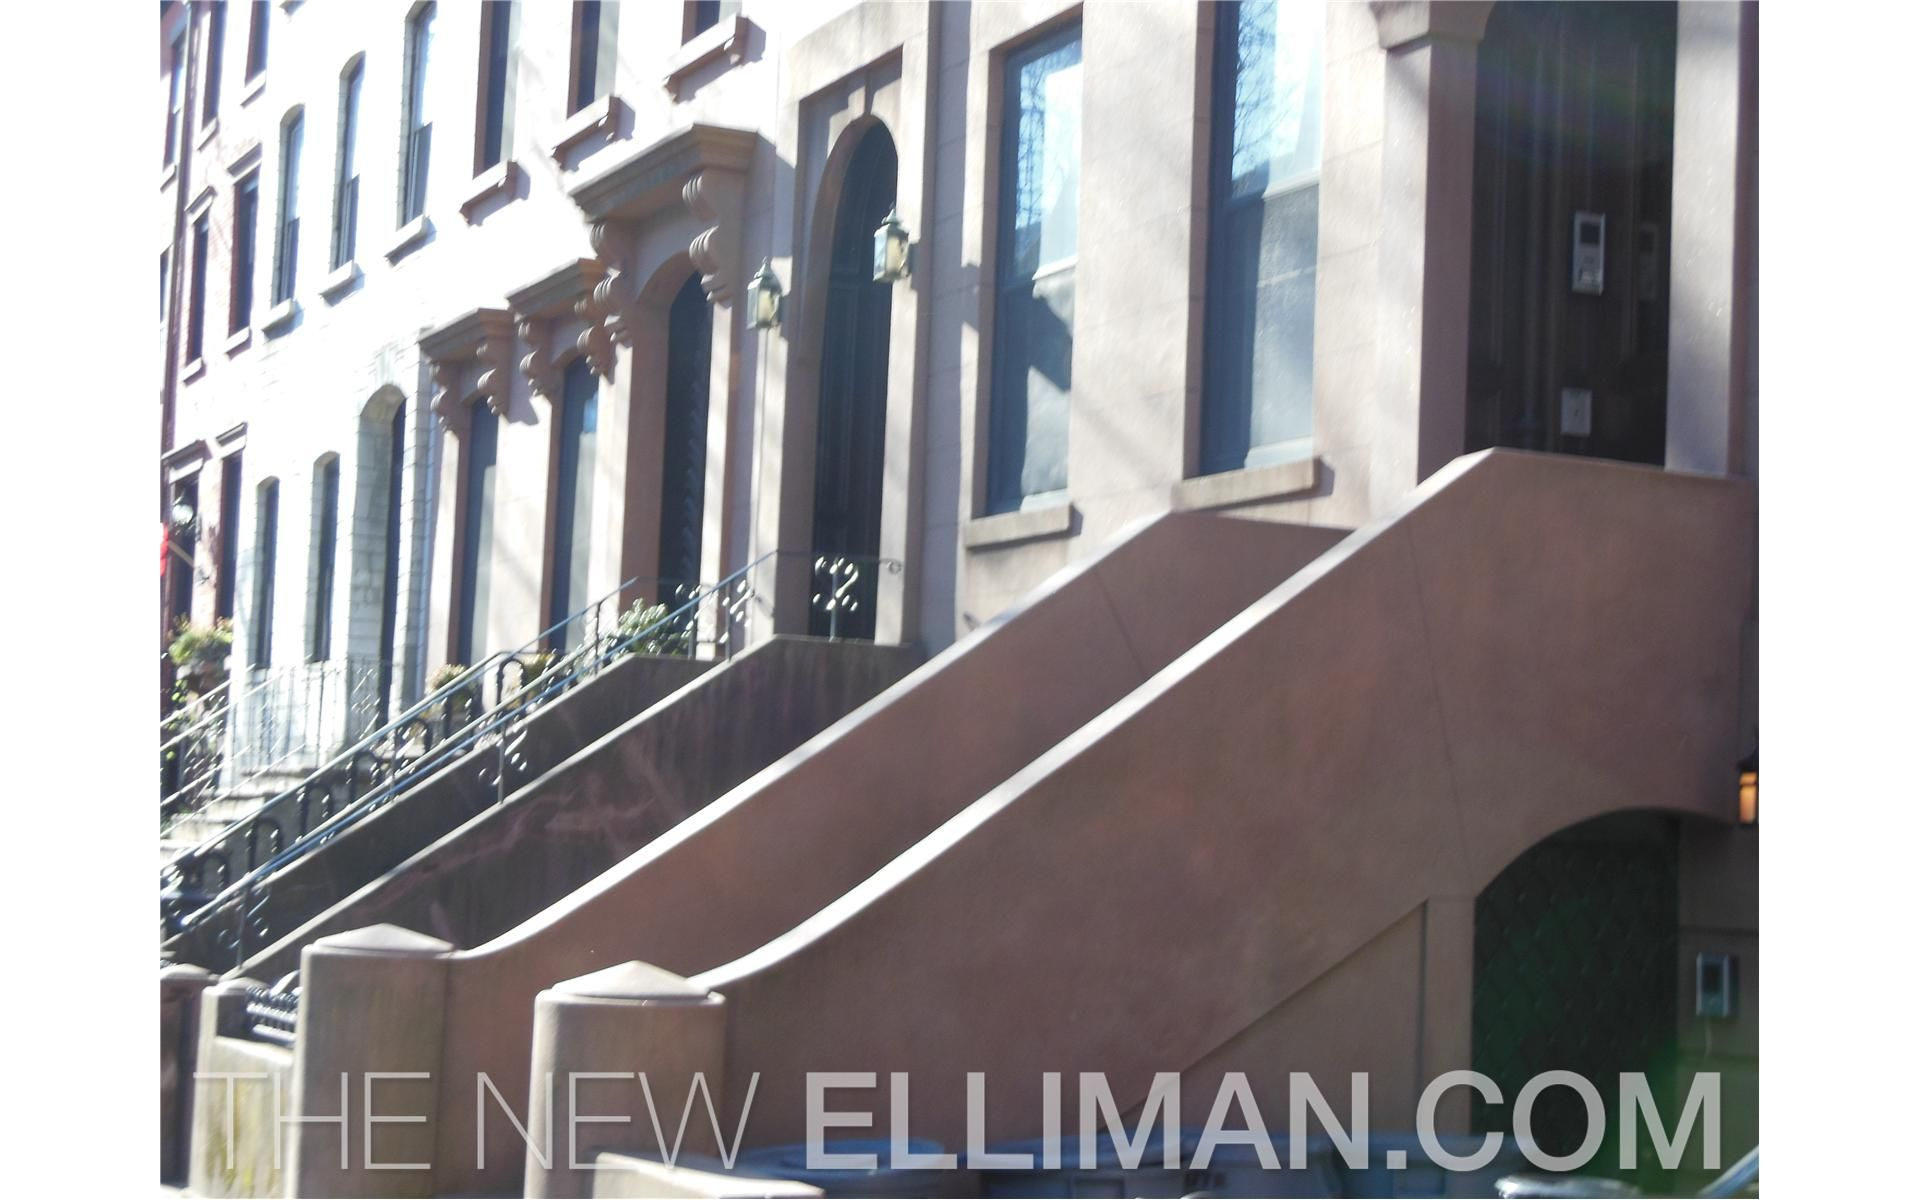 For Rent 350 Clinton St 1 in Cobble Hill